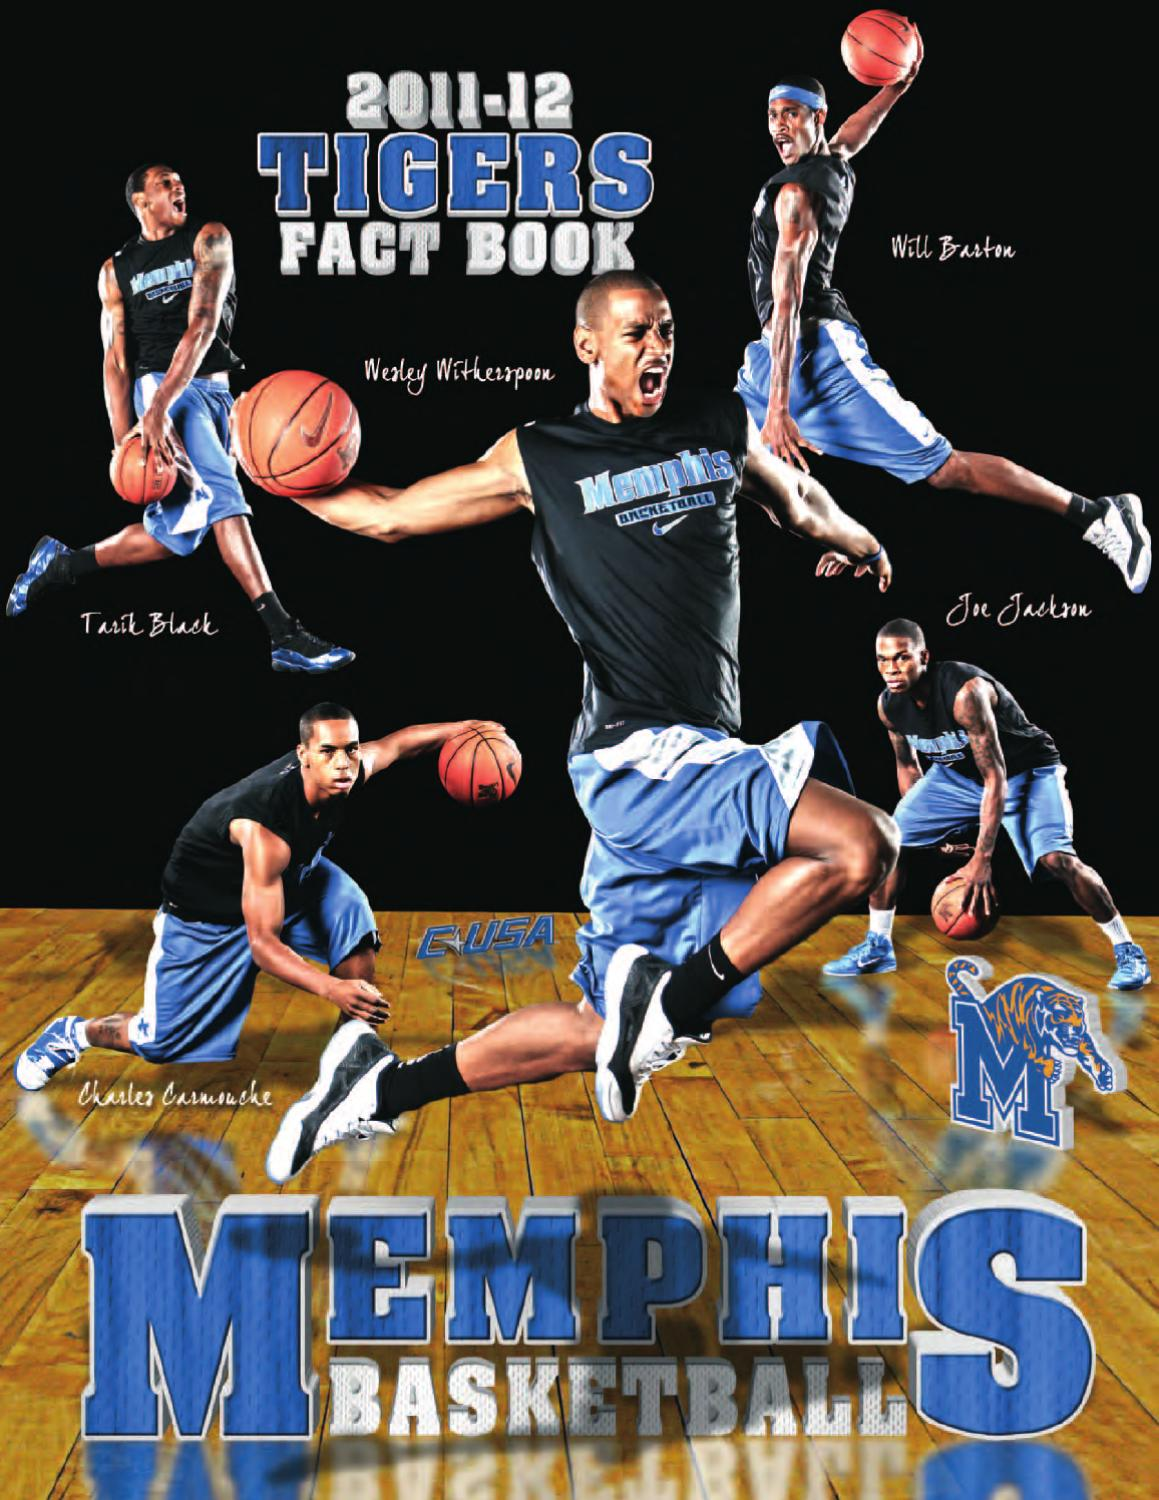 2011-12 Memphis Men s Basketball Fact Book by University of Memphis  Athletic Media Relations - issuu 5e68a55257996